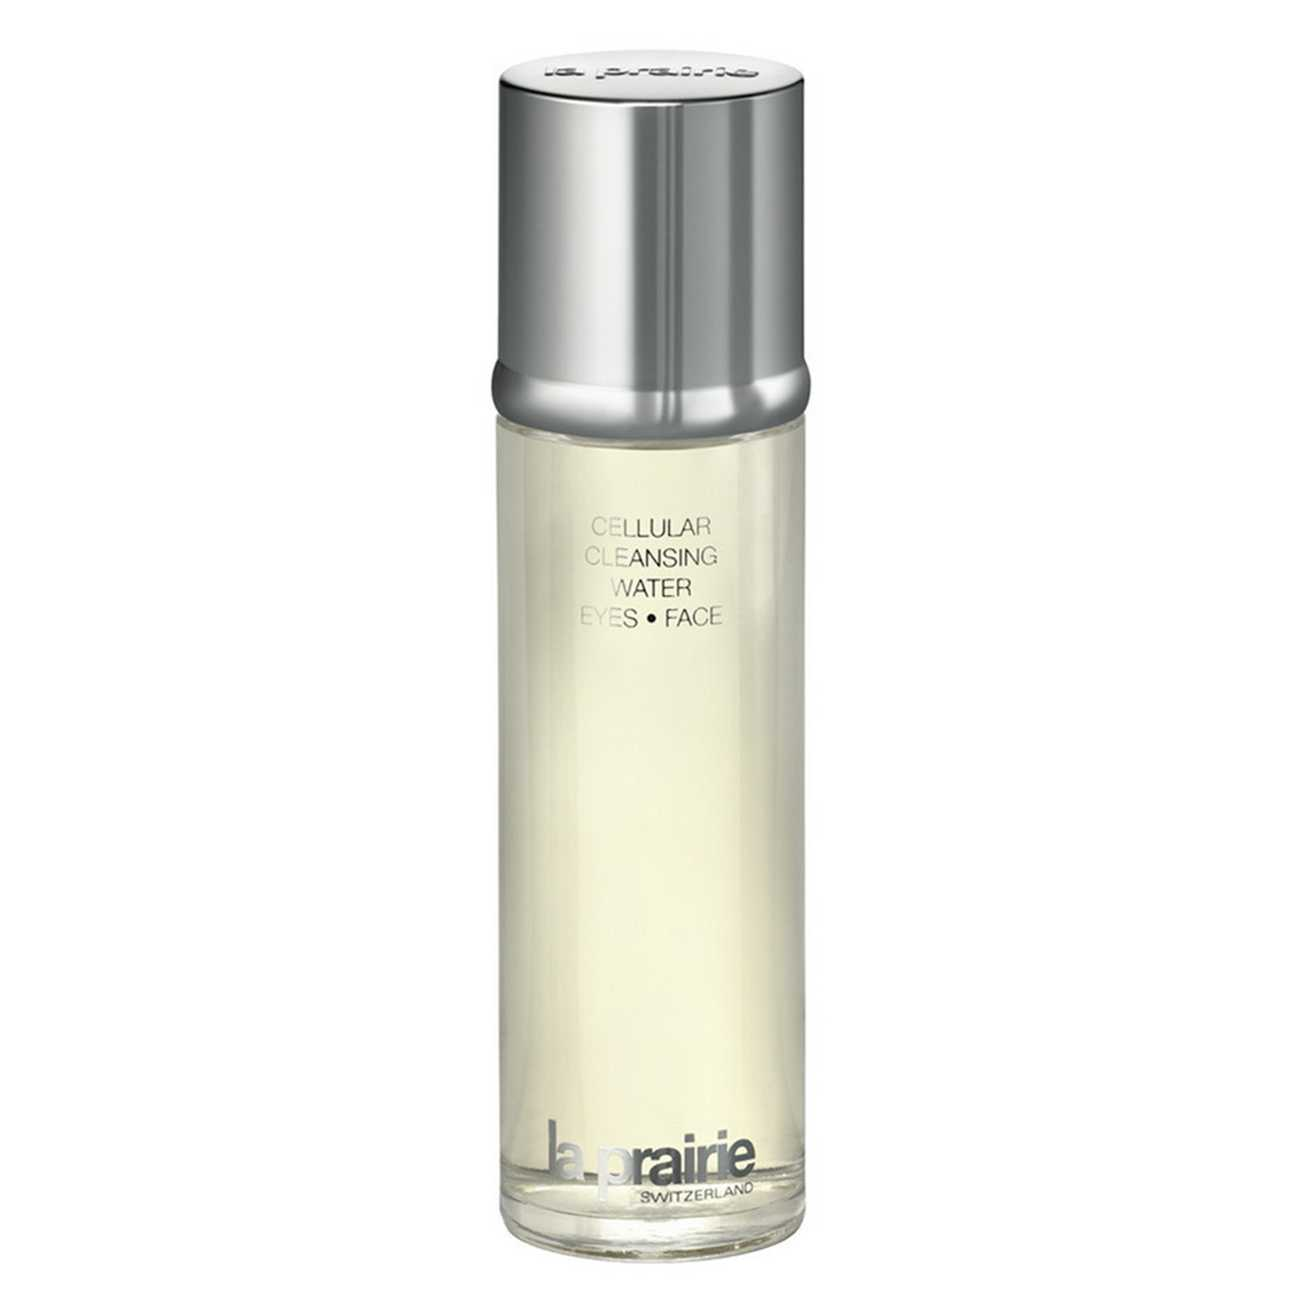 CELLULAR CLEANSING WATER 150 ML